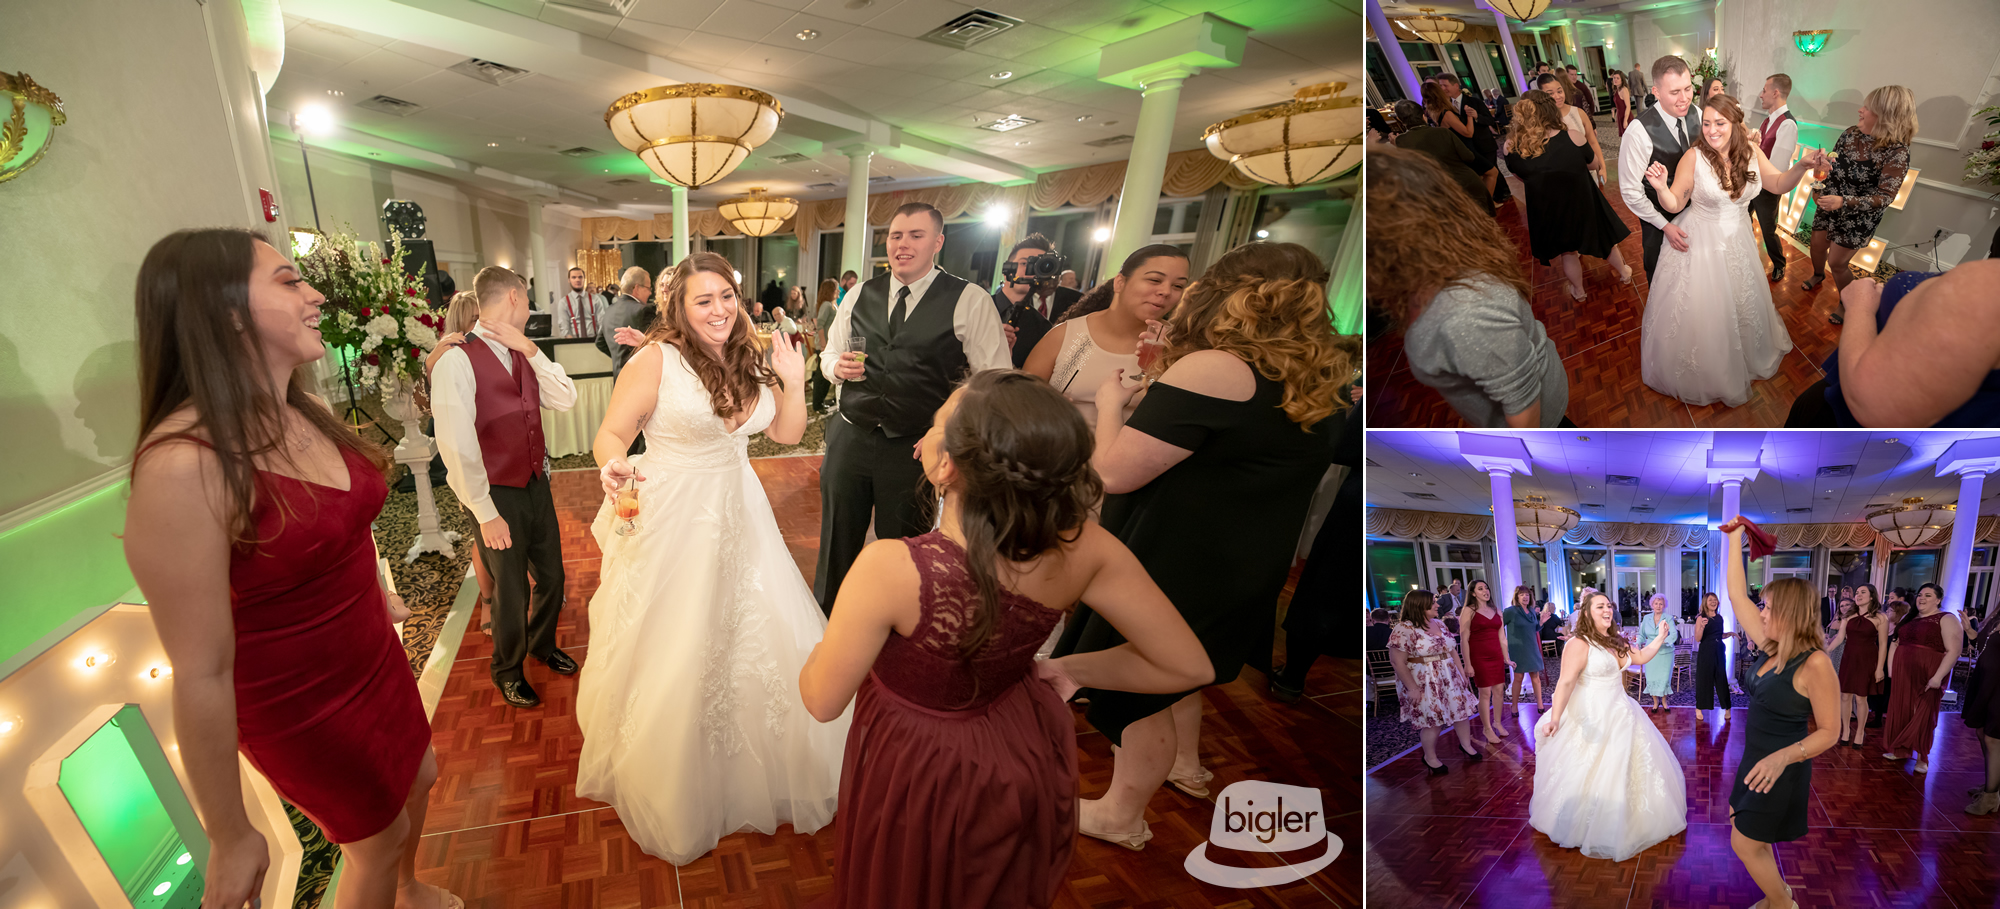 20181110_-_33_-_Amanda_and_Michael,_Albany_Country_Club,_Wedding_Photos